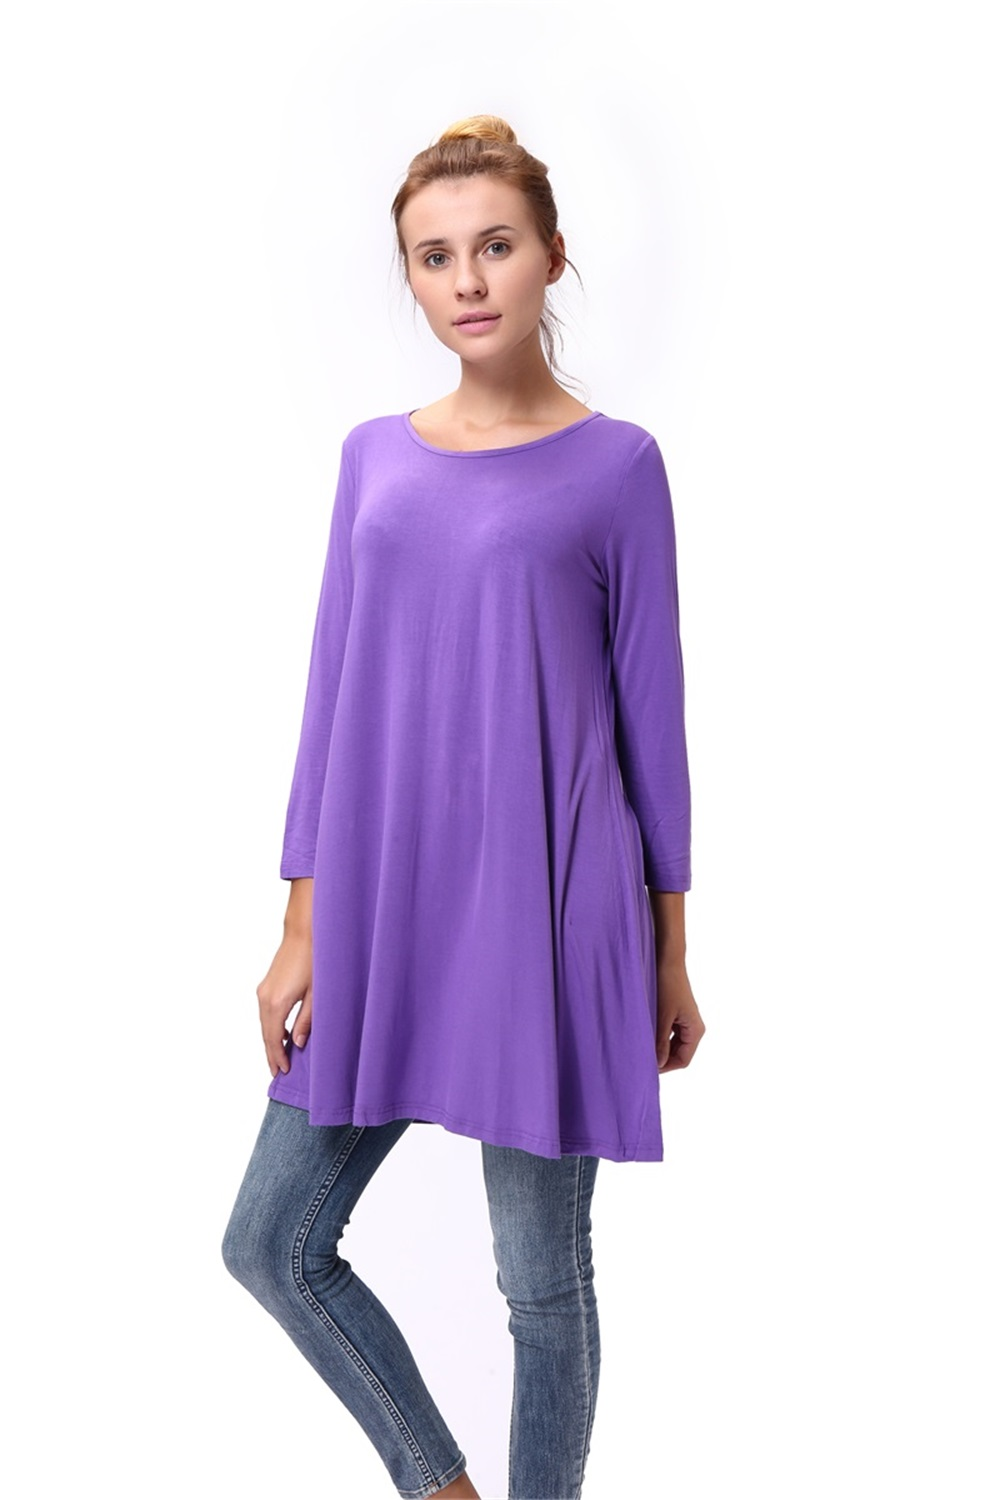 Women-Casual-Round-Neck-3-4-Long-Sleeve-Trapeze-Tunic-Top-Lady-Loose-Fit-Dress thumbnail 44